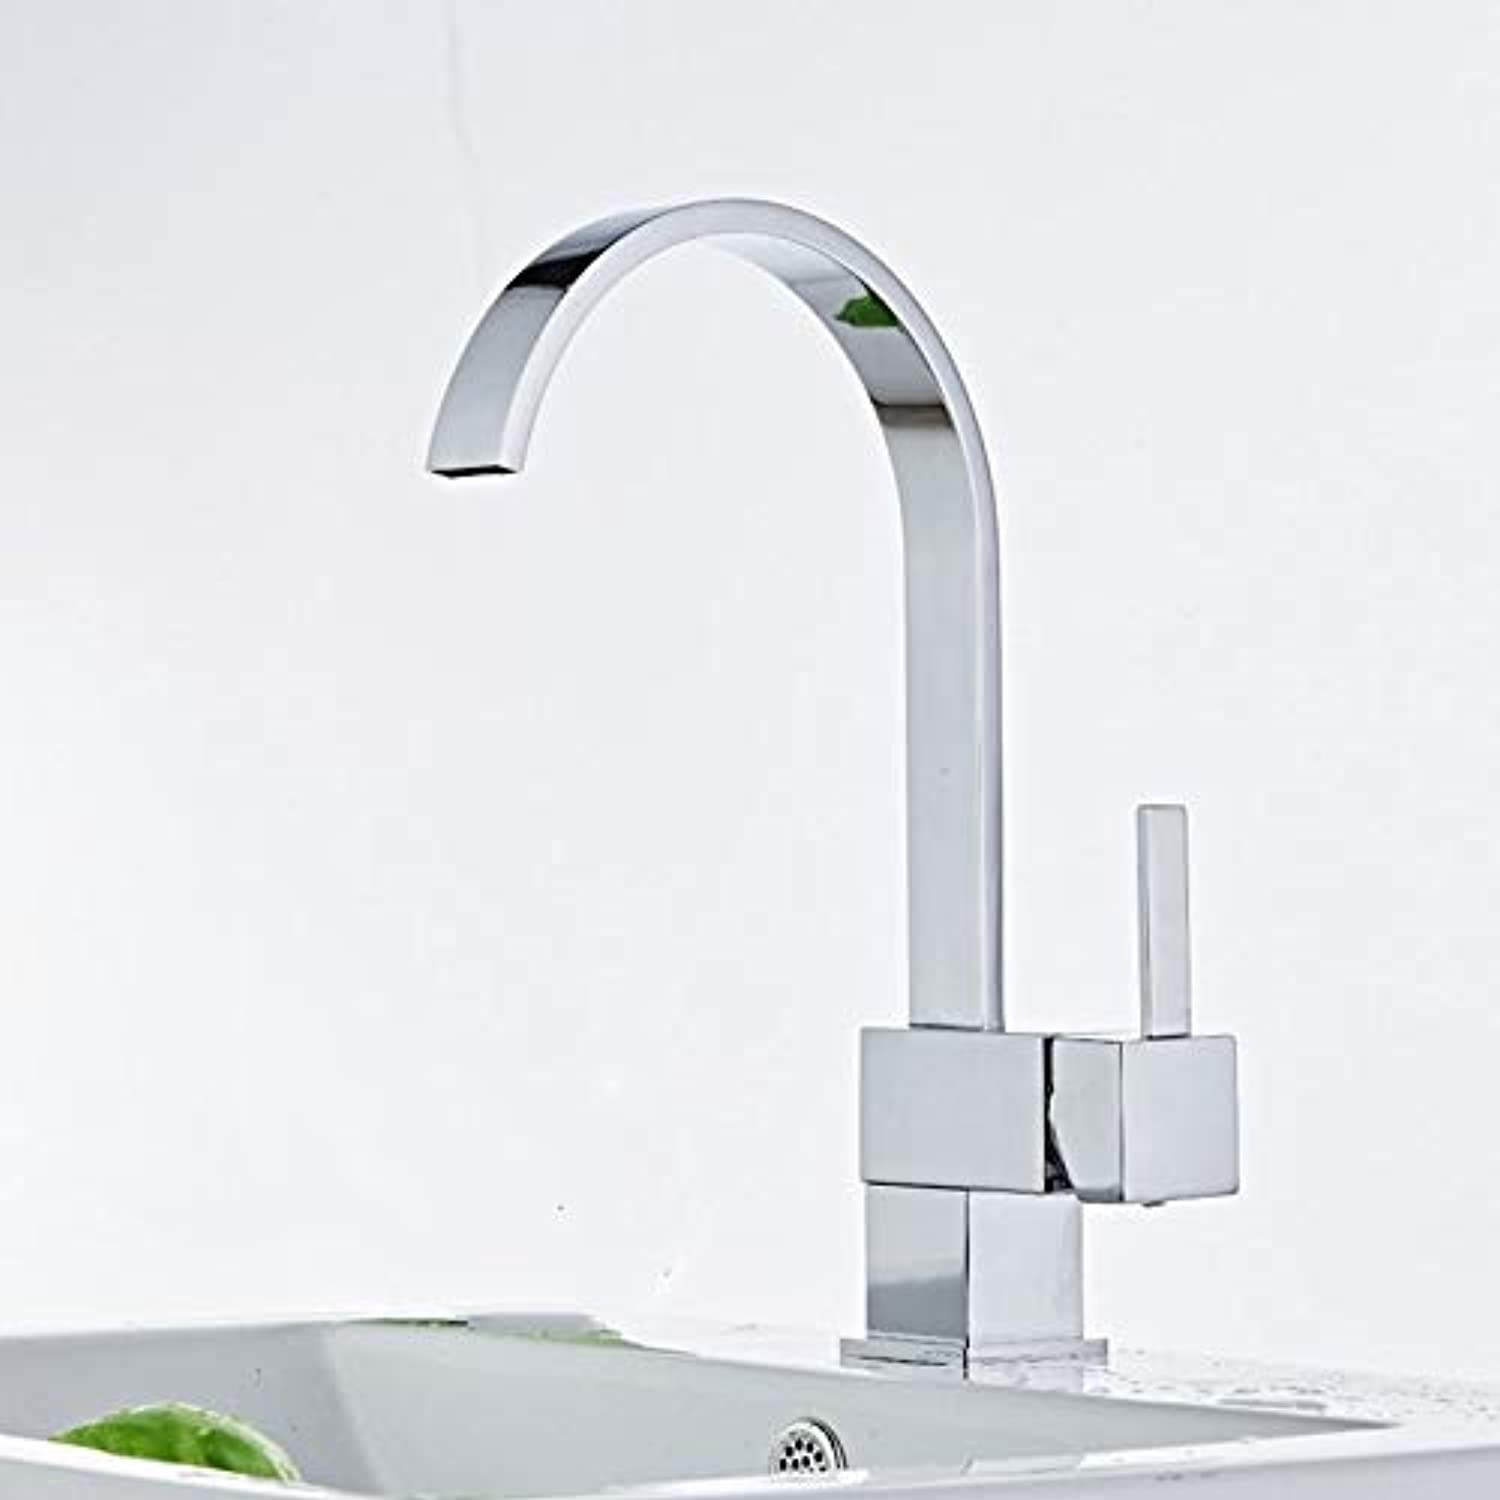 redOOY Kitchen sink full copper kitchen faucet, hot and cold water faucet, single hole hot and cold sink faucet